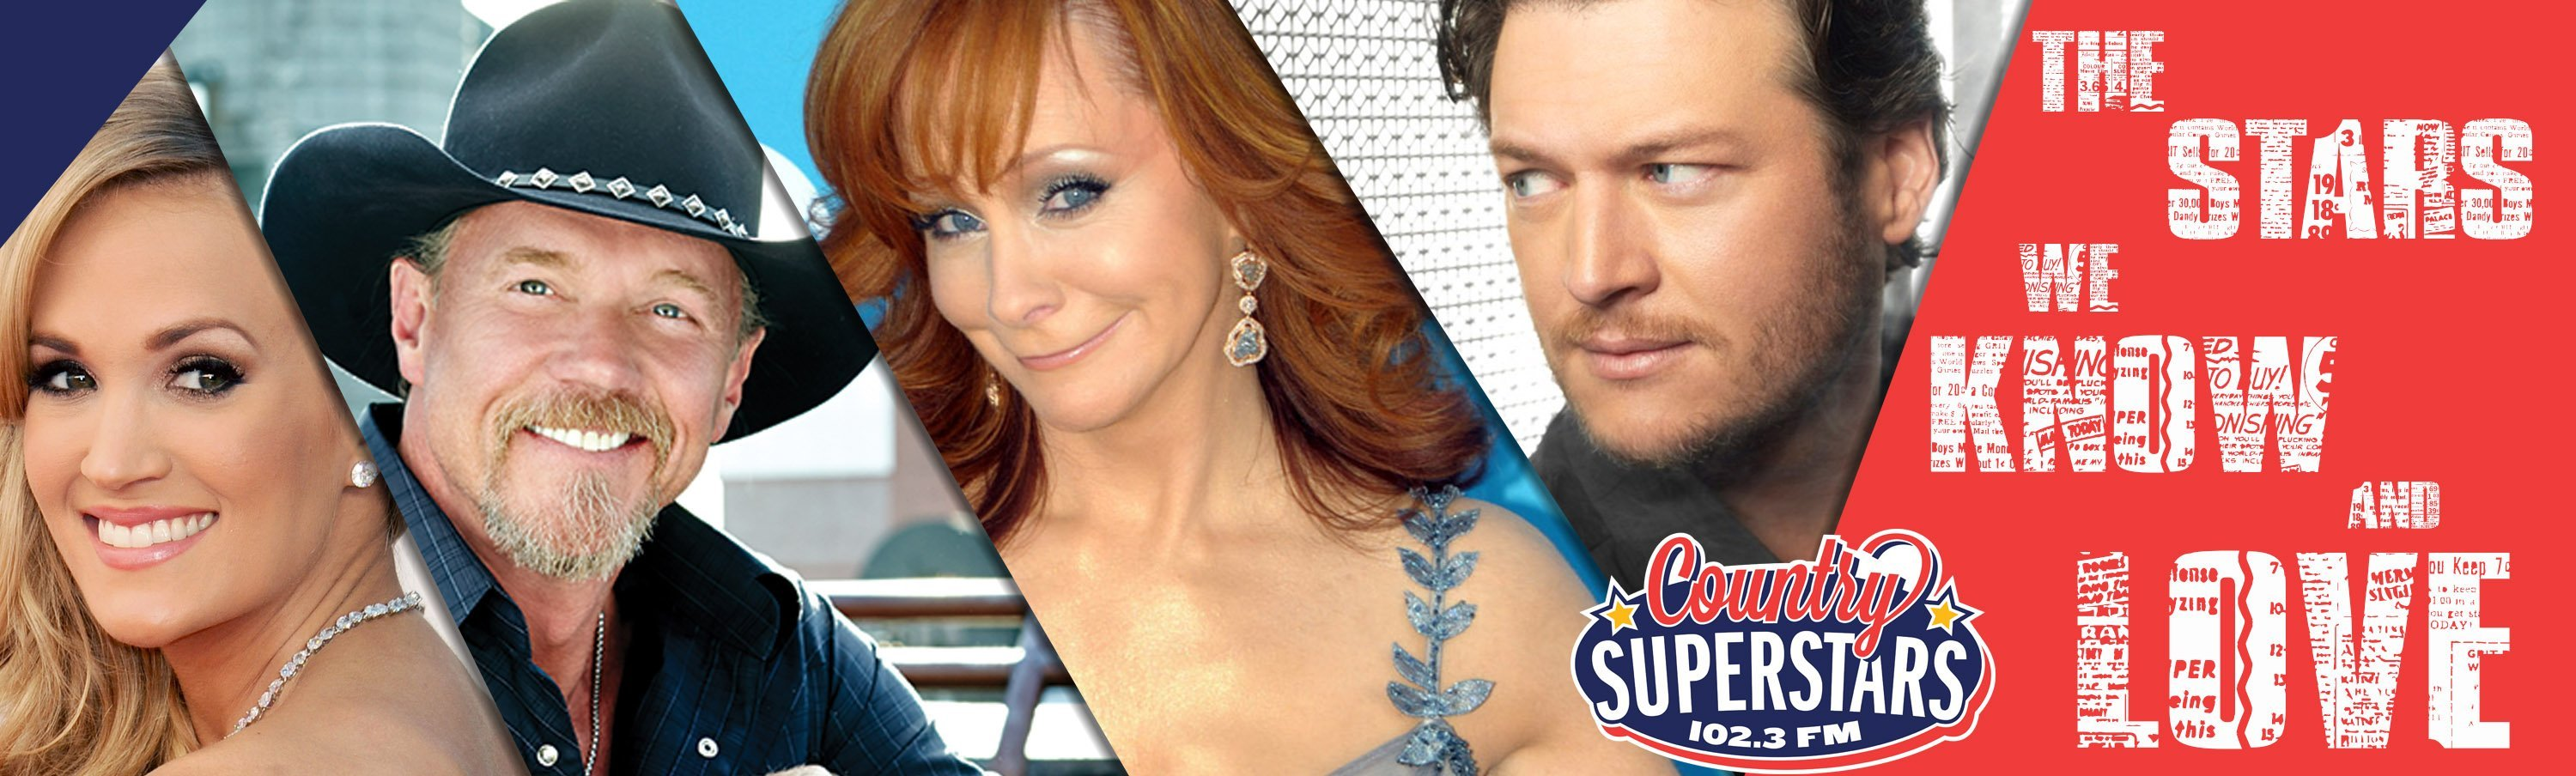 Country Superstars 102.3 - 001